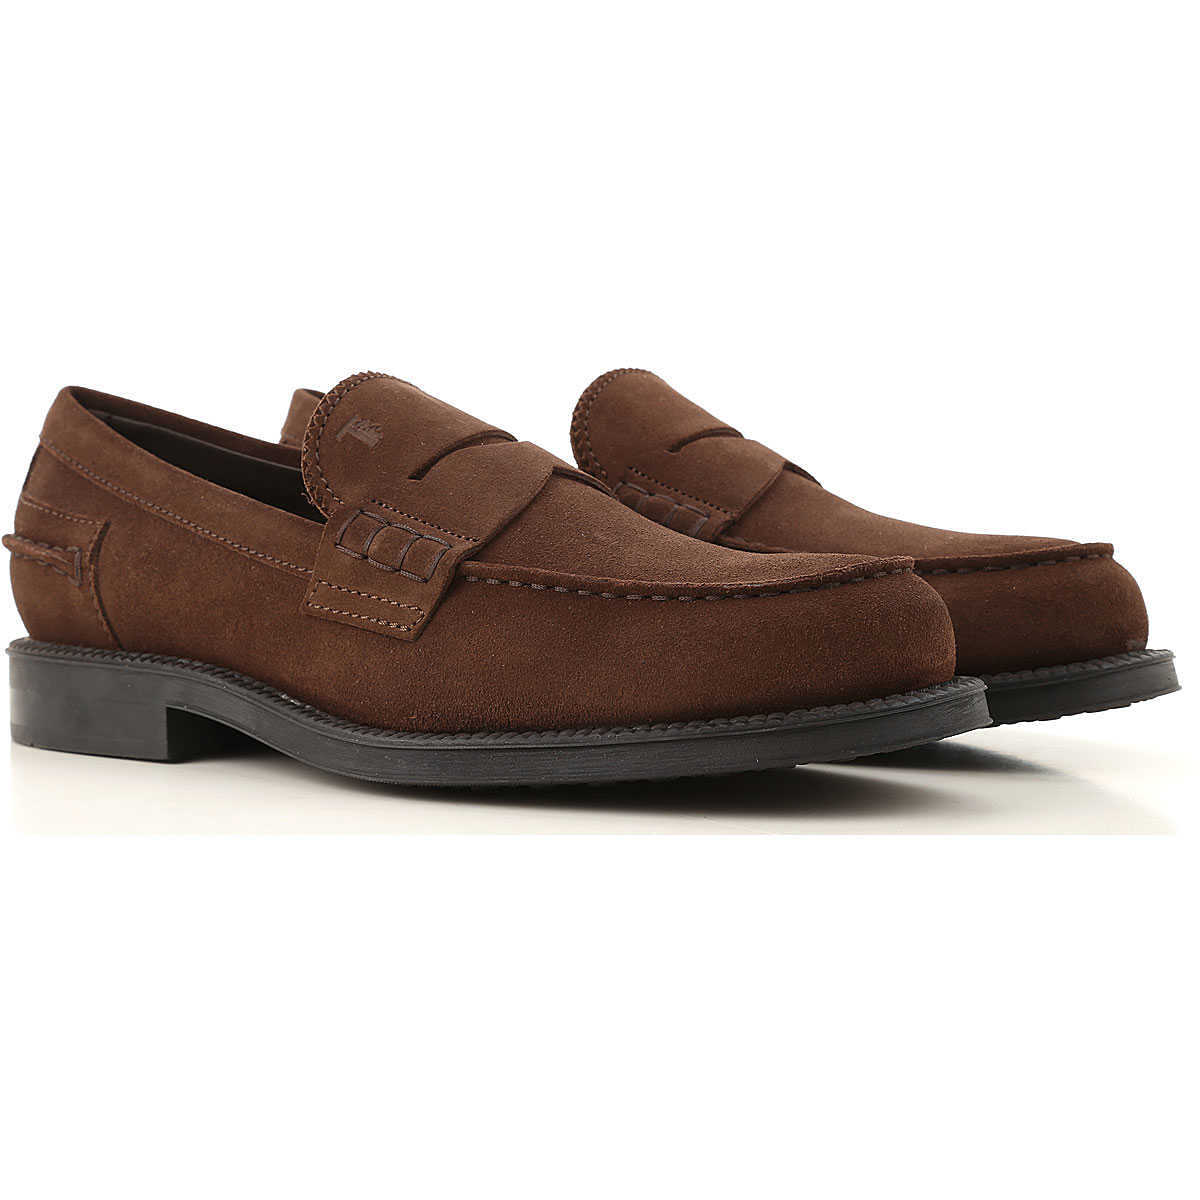 Tods Loafers for Men Coffee Canada - GOOFASH - Mens LOAFERS